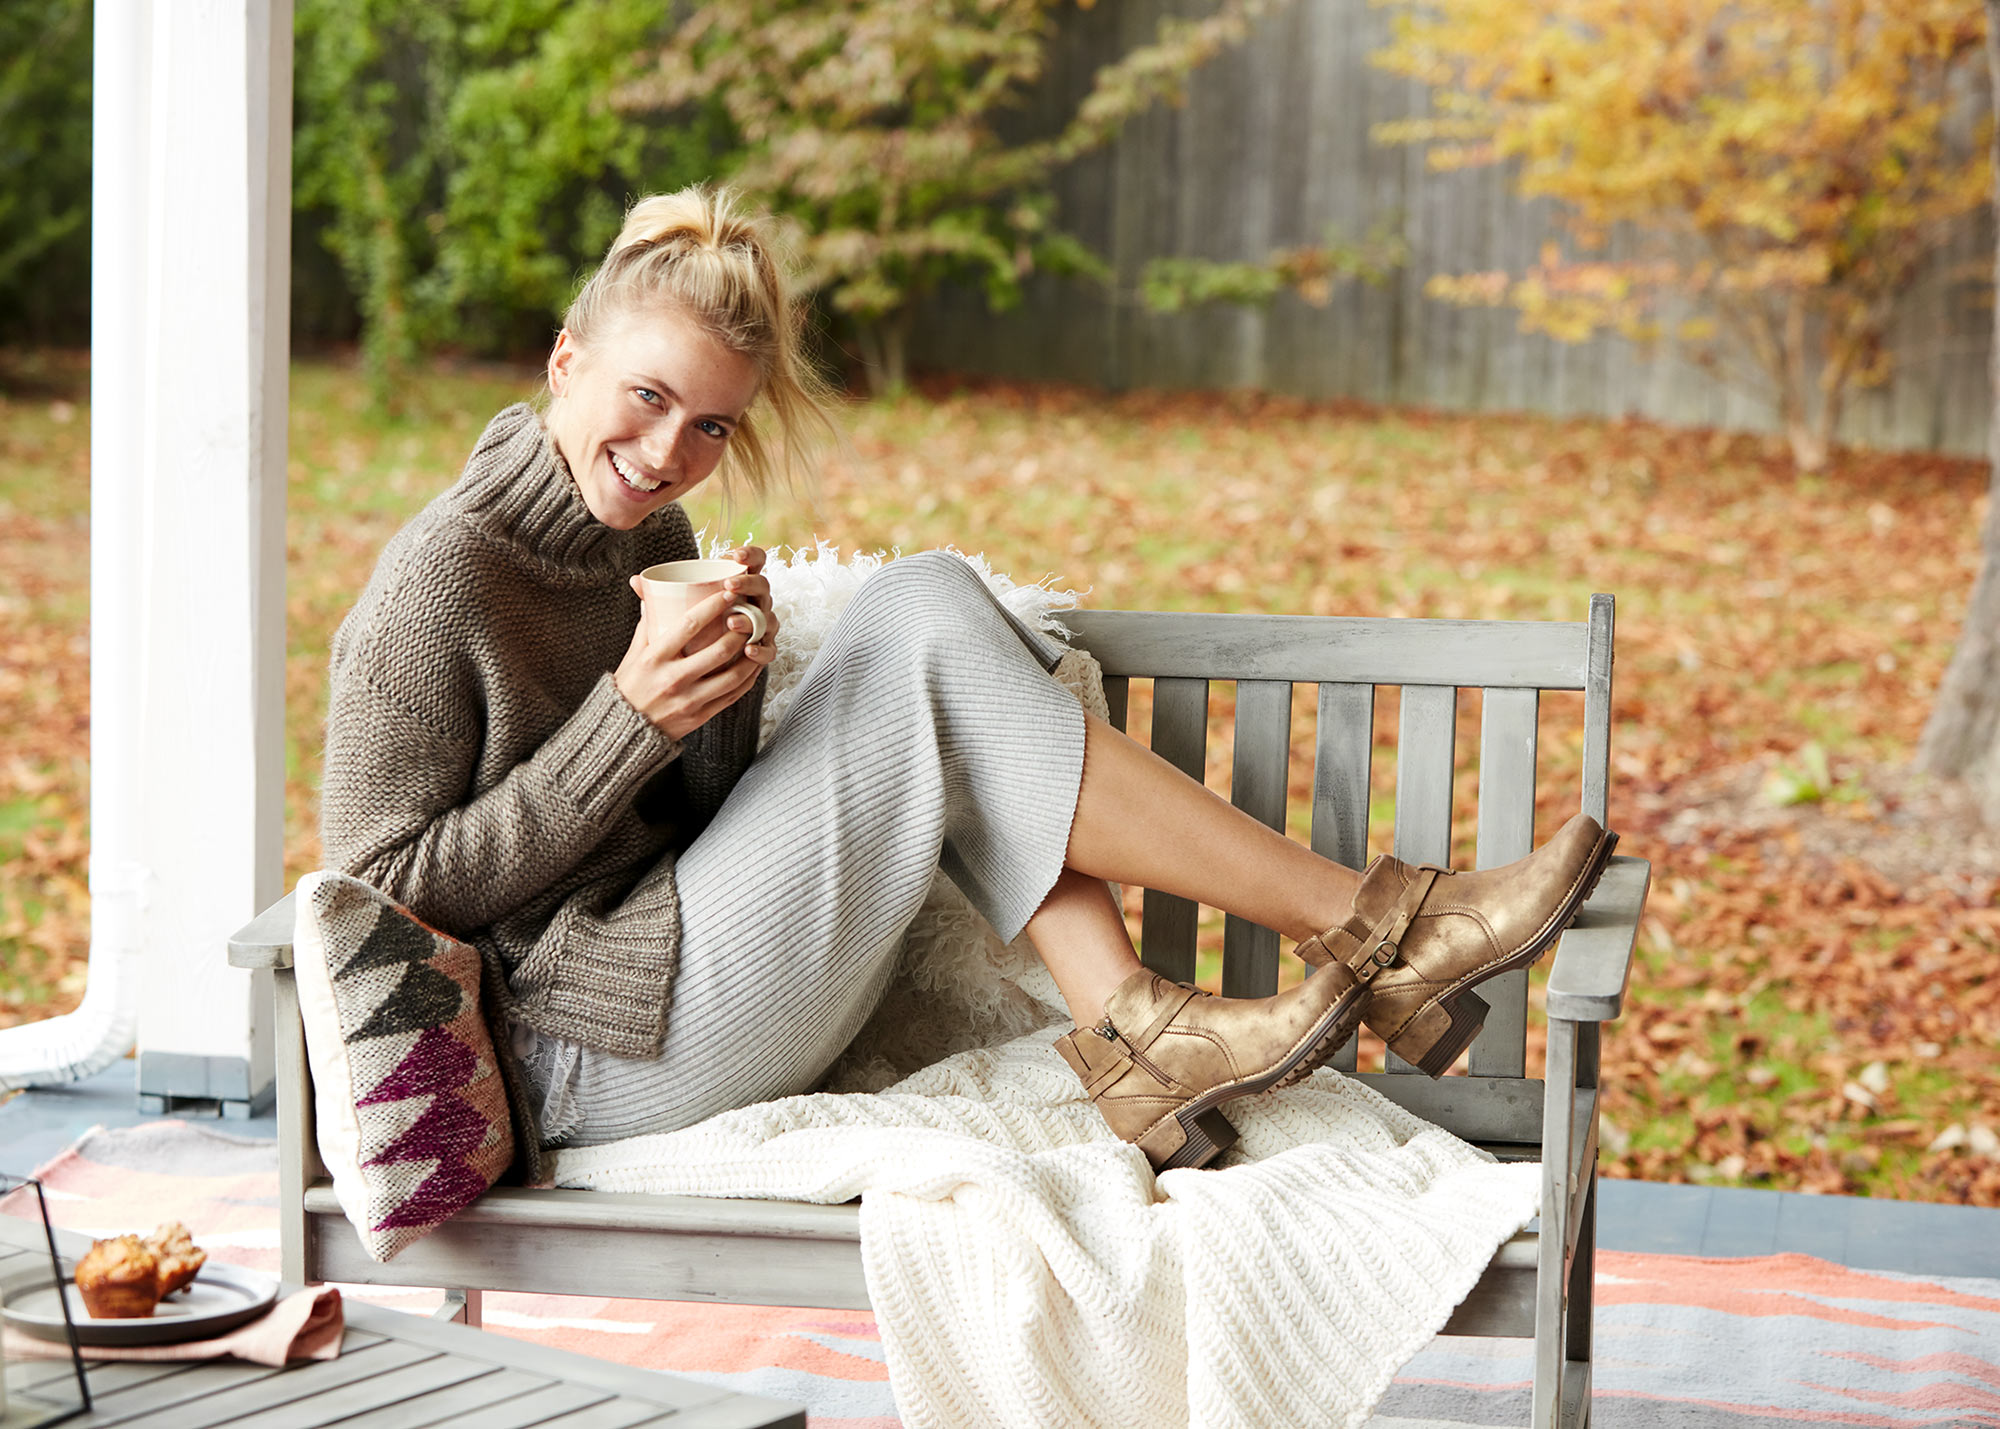 A young woman sitting on her porch enjoying coffee